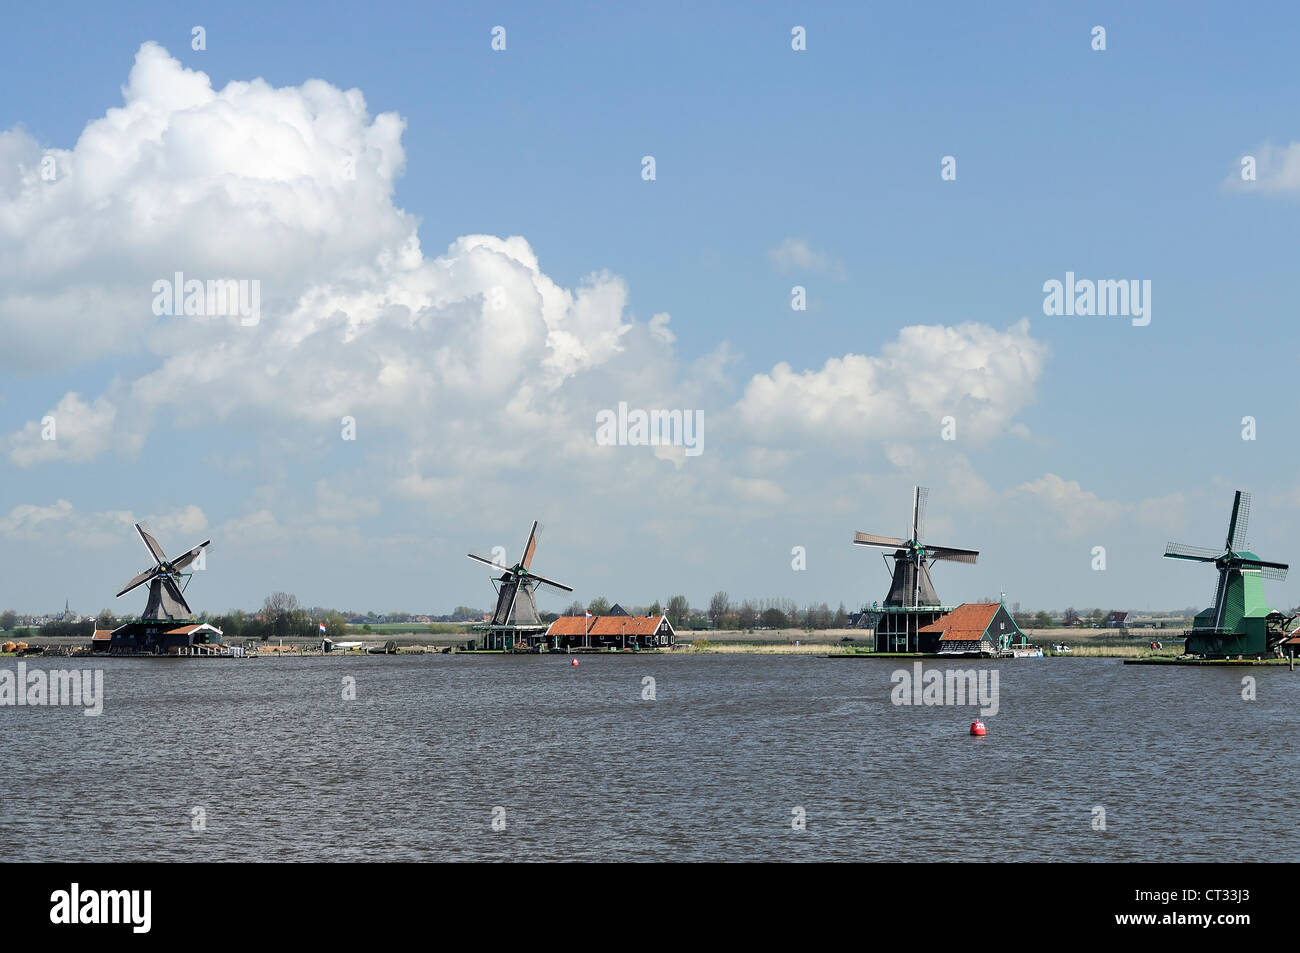 windmills row, Zaanse Schans view of traditional windmills at touristic location, shot in bright spring light - Stock Image